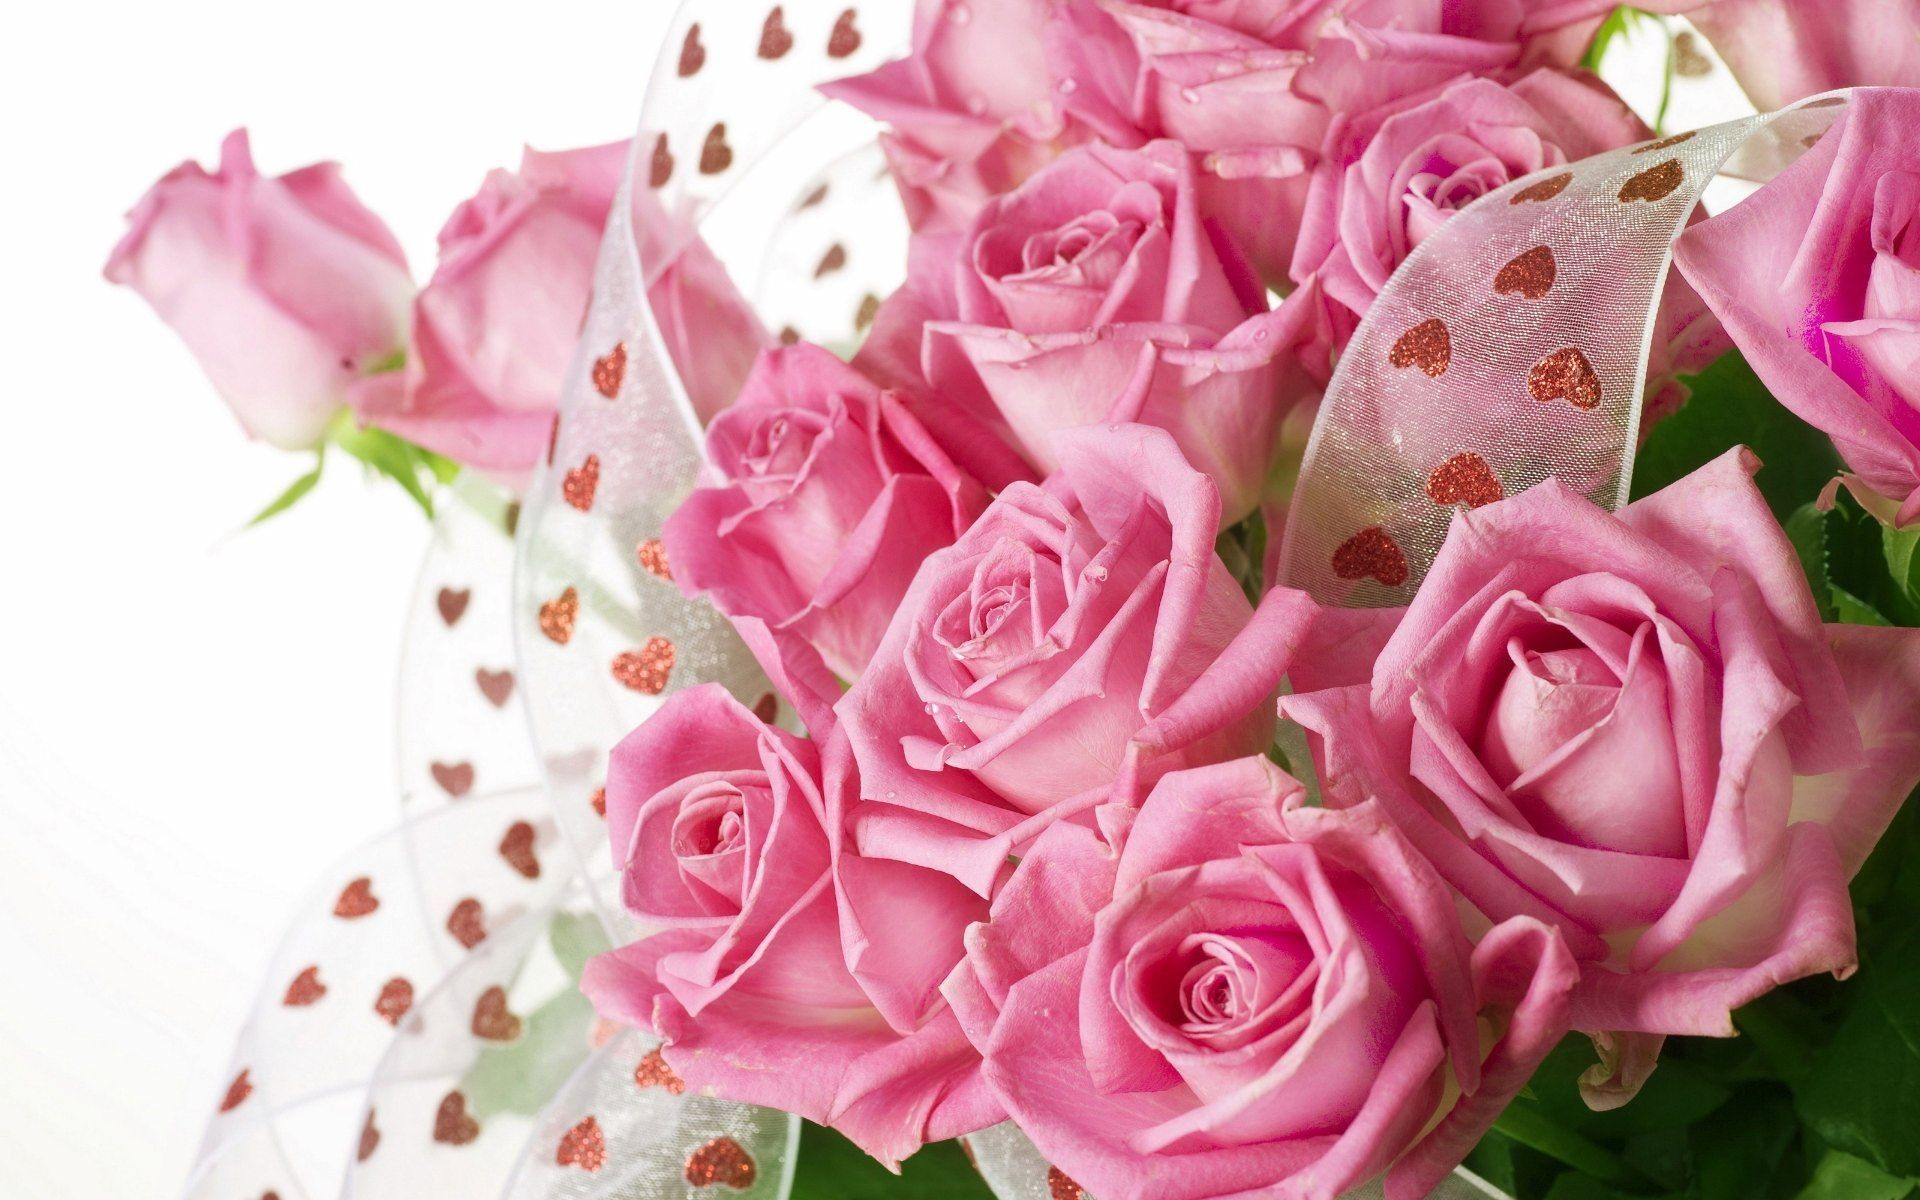 1920x1200 Pink roses bouquet with drops of water Wallpaper